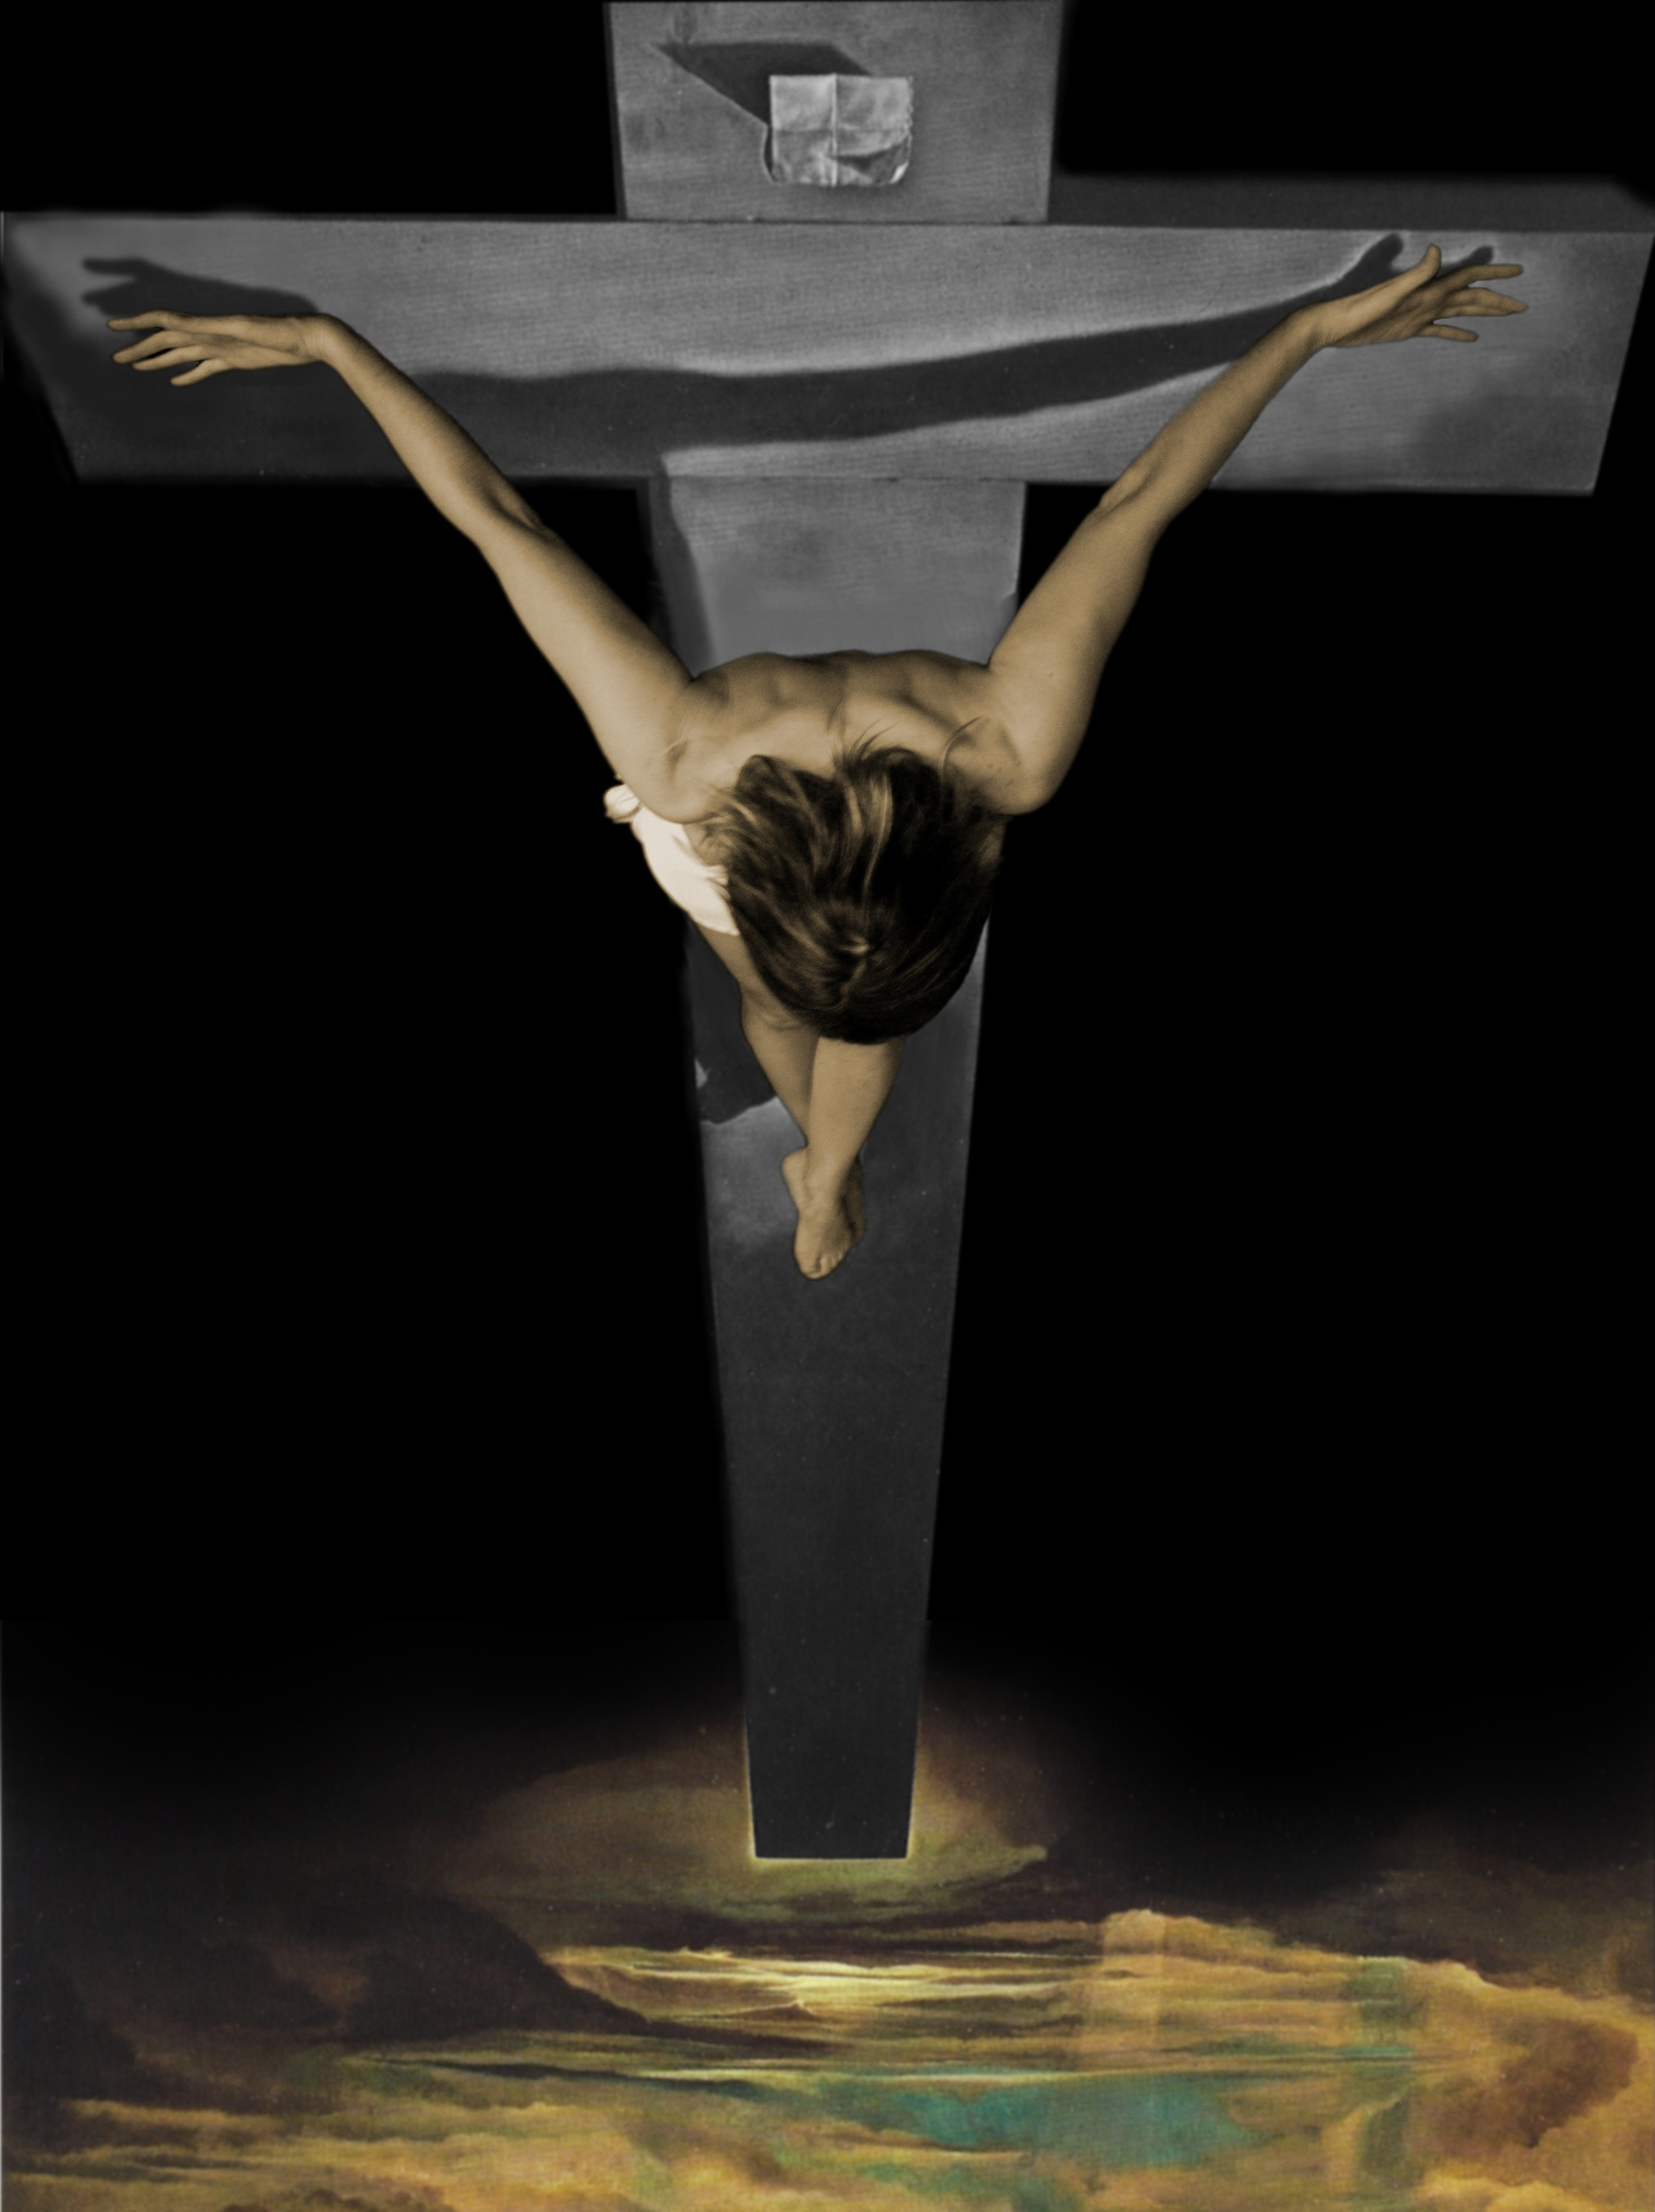 salvador dali christ of st john of the cross Works by marcel duchamp will be compared and contrasted with those of dali - but nothing can possibly compare with christ of st john of the cross it leaves me incredulous that some people don't even know who salvador dali was.